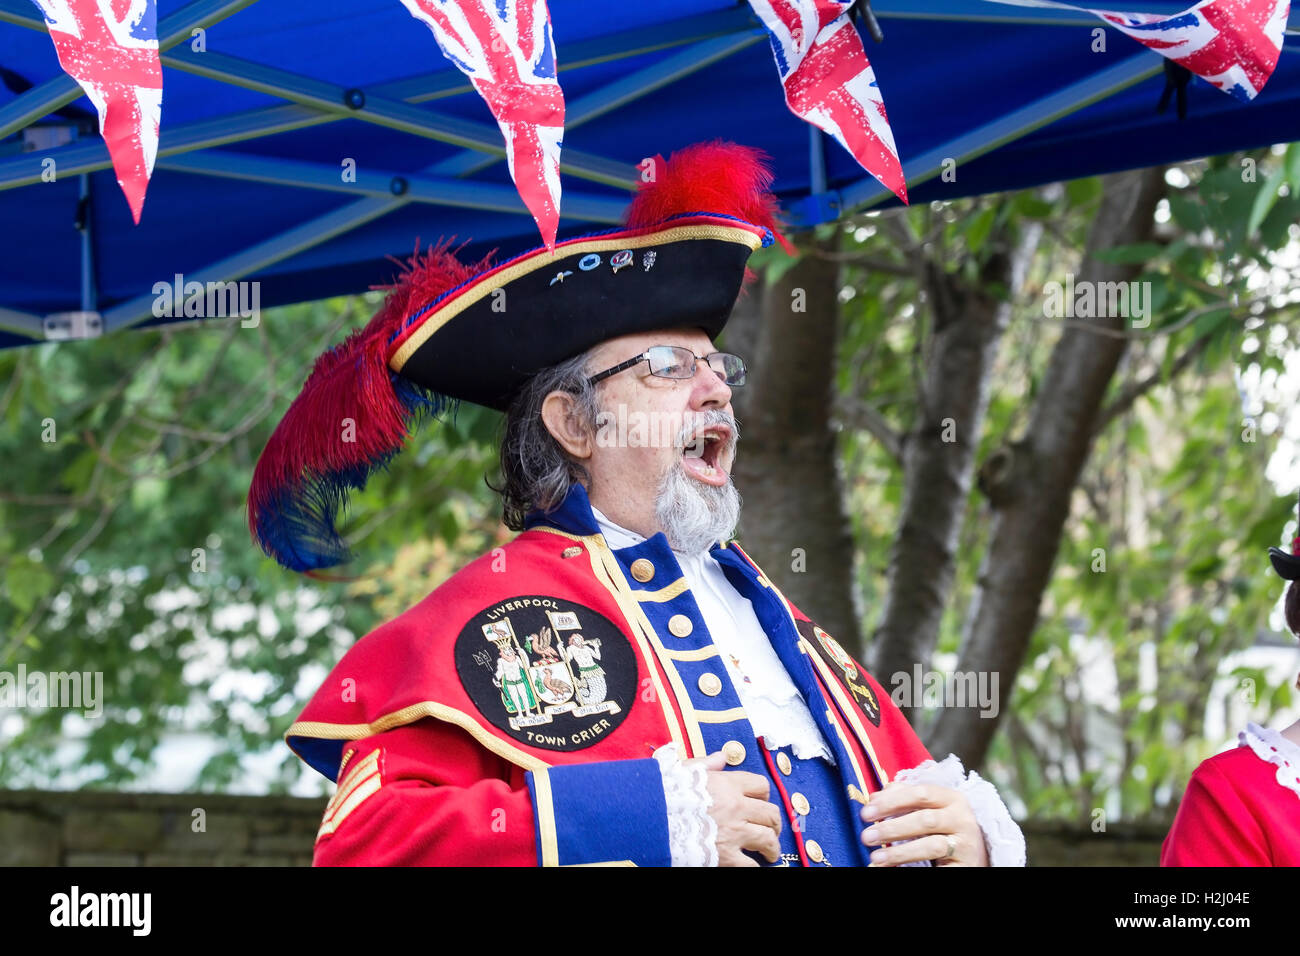 The Liverpool Town Crier loudly proclaiming a message at the Huddersfield Town Crier's competition 2016 - Stock Image